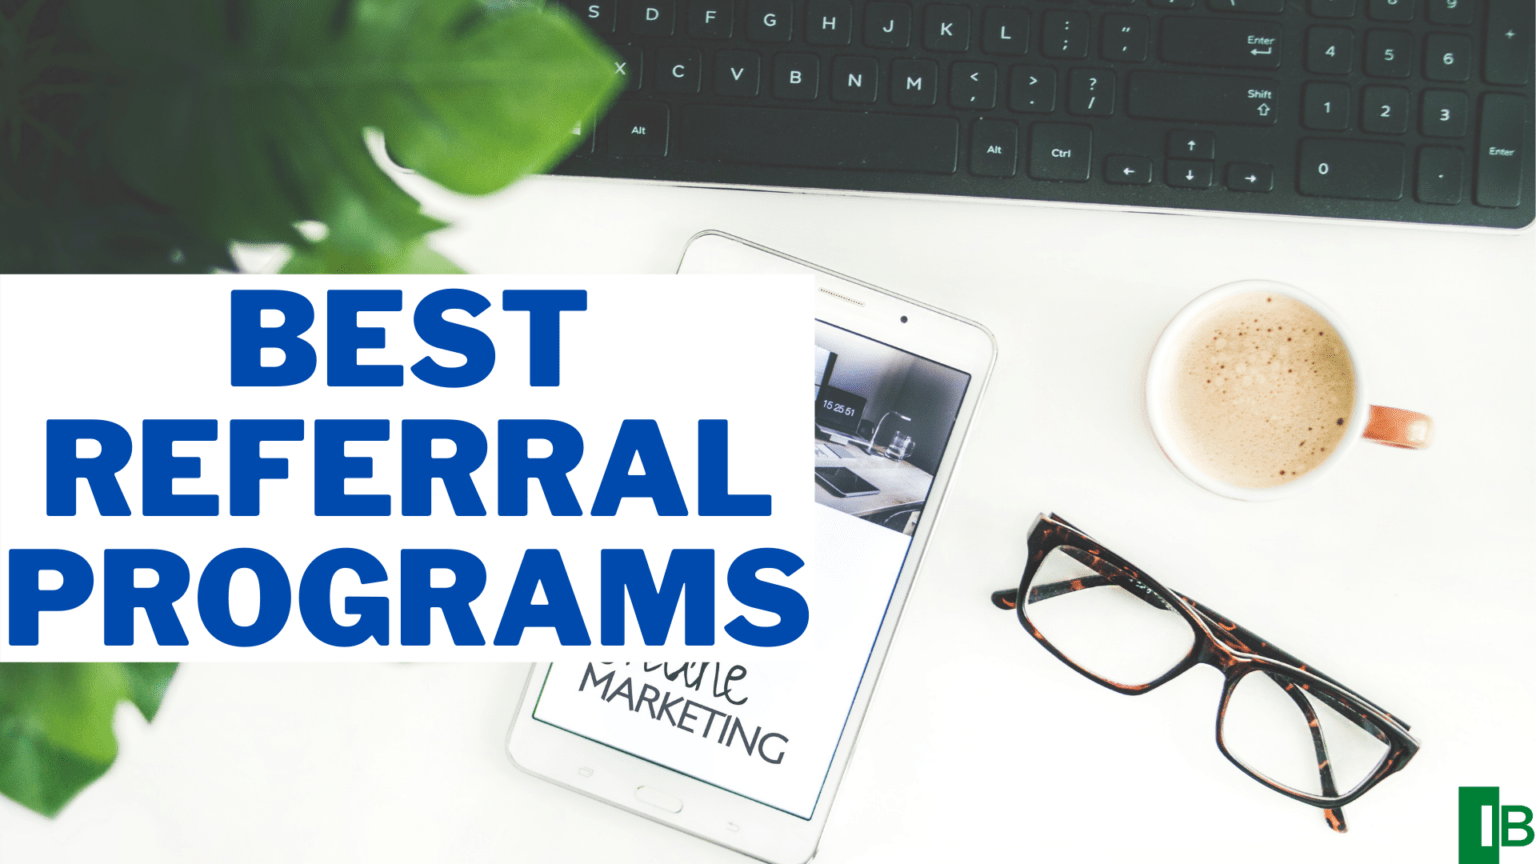 10 Best Referral Programs To Make Money In 2021 - Income ...